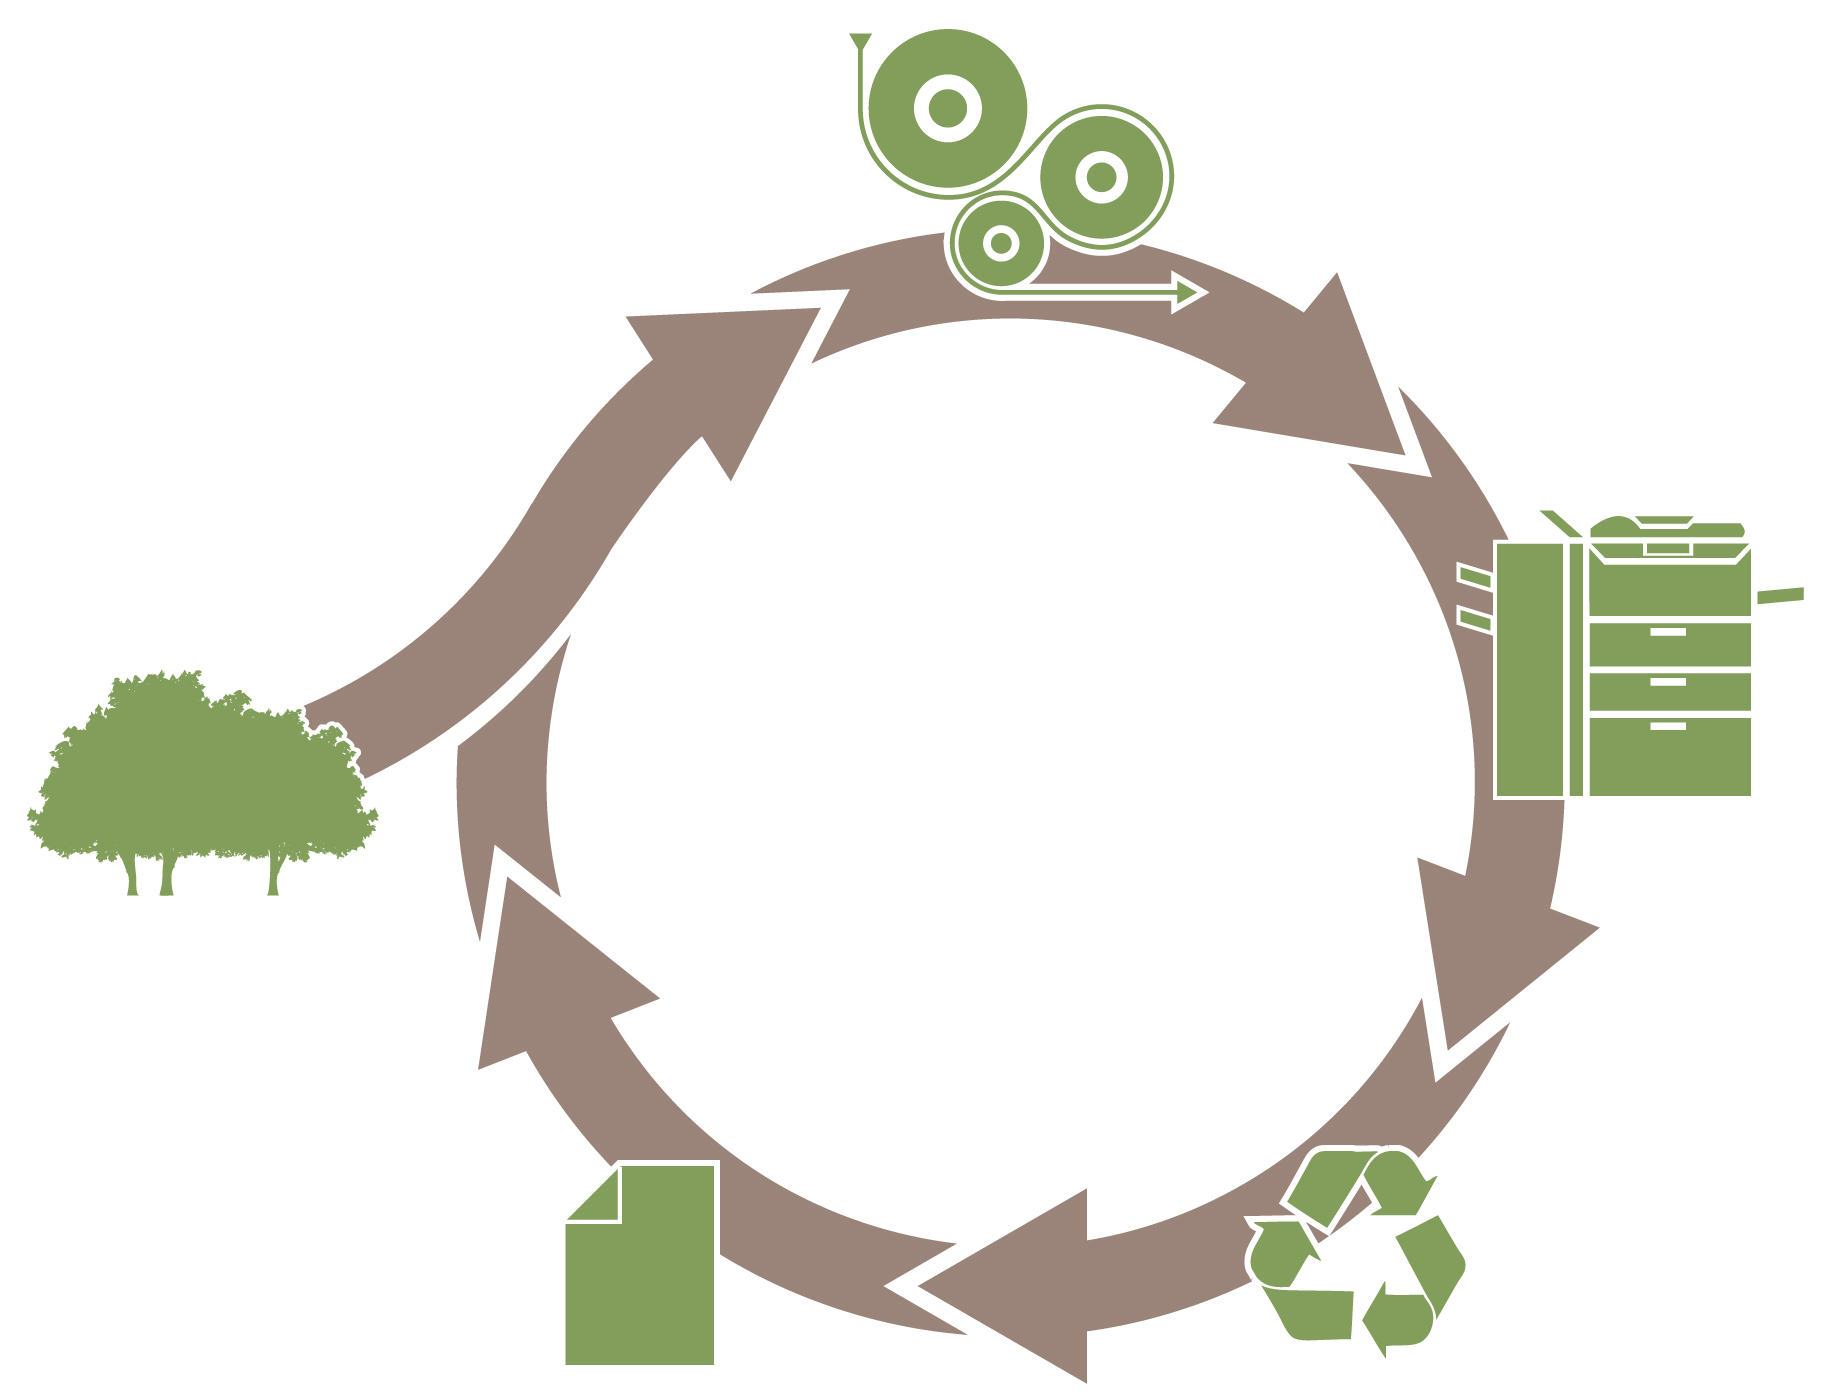 Recycling of paper help in conservation of forest explain